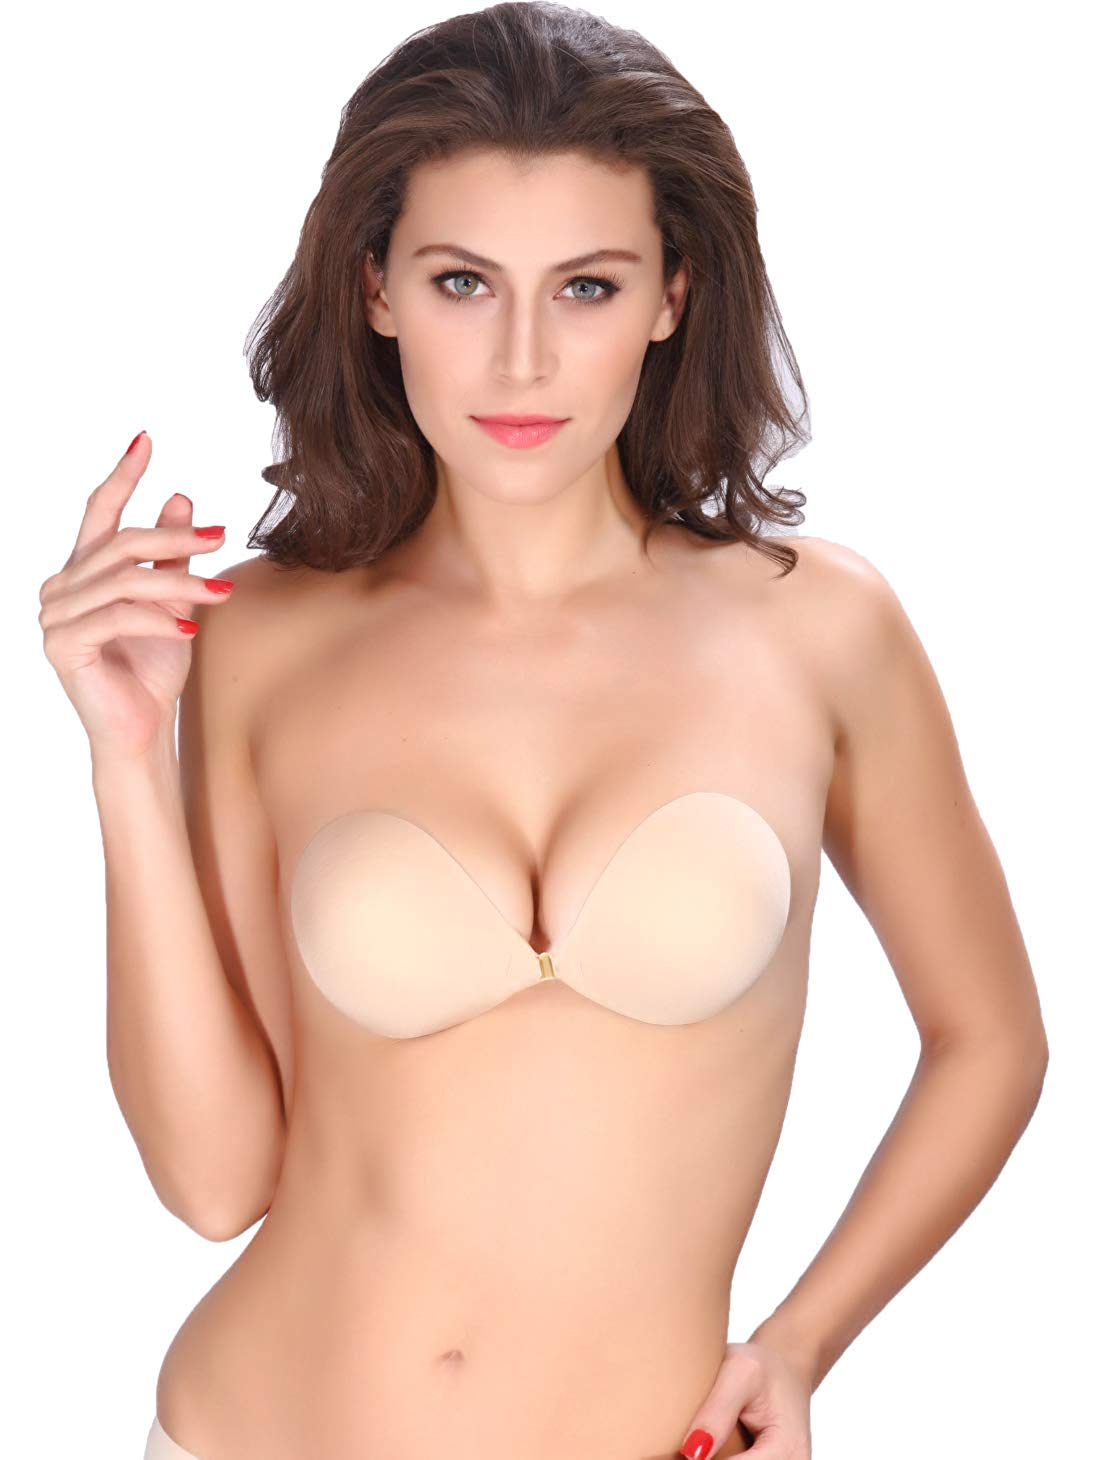 c3c5cb66ab3eb Get Quotations · AVIGOR Women s Strapless Bra Self Adhesive Silicone Sticky Bras  Reusable Invisible Backless for Women